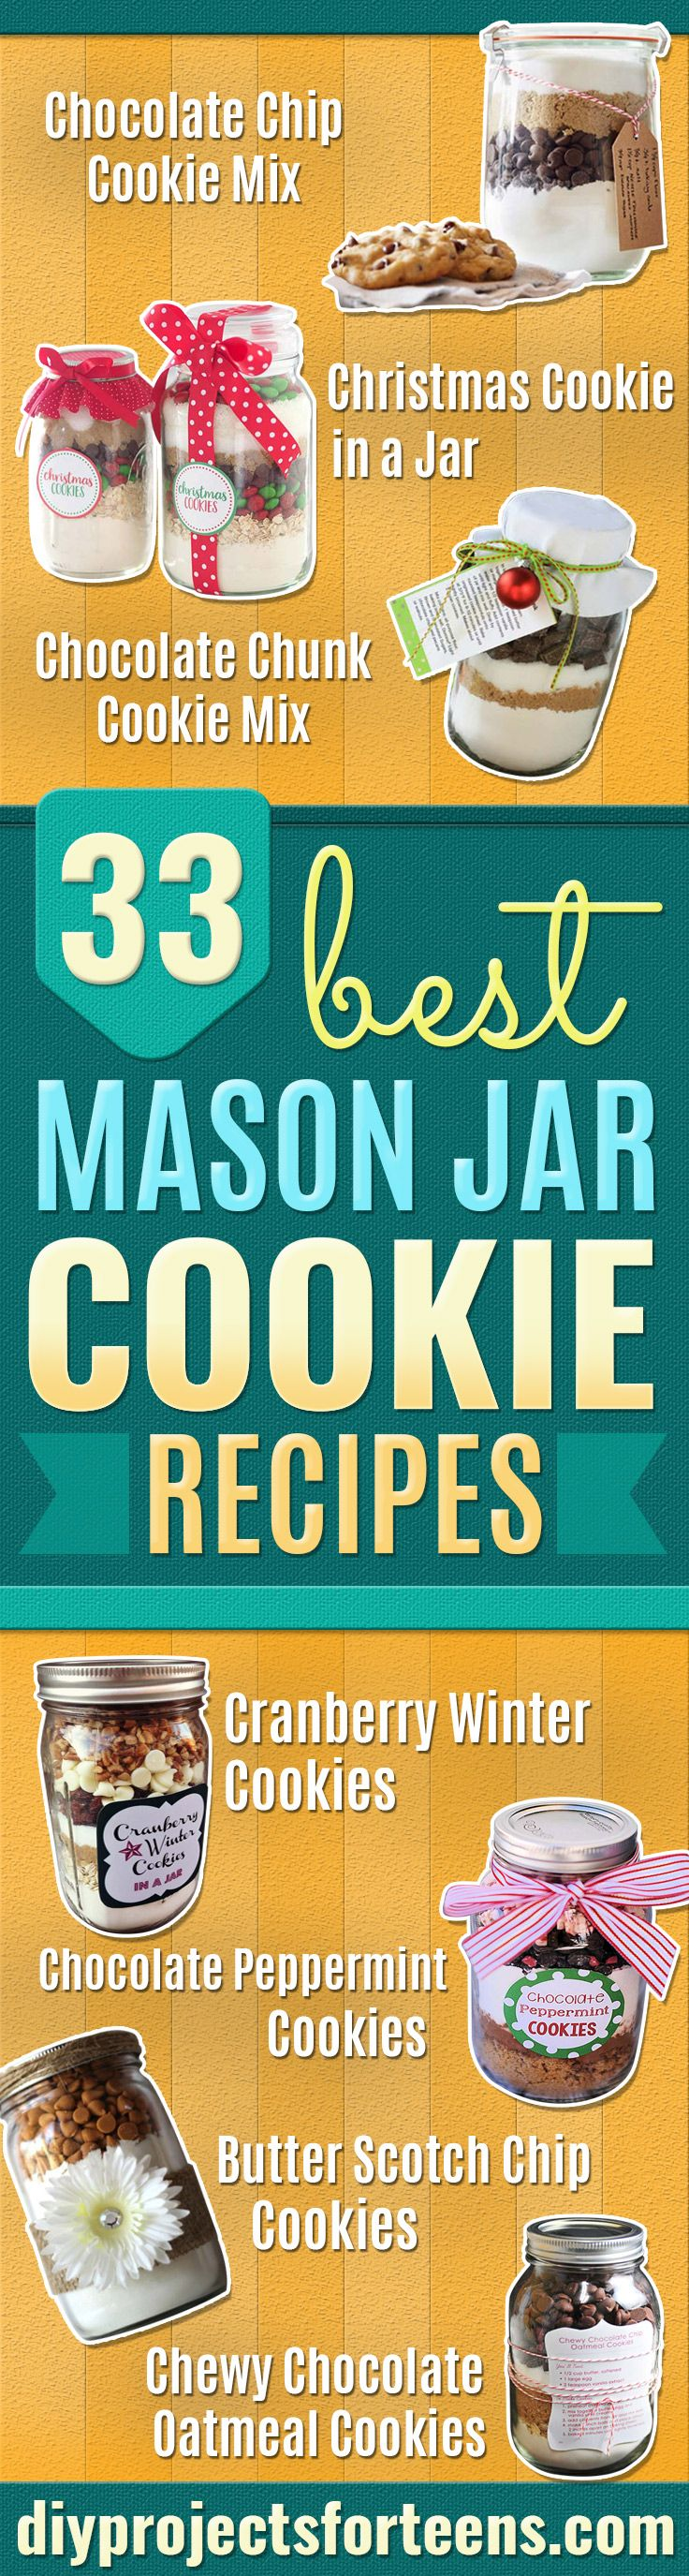 Best Mason Jar Cookies - Mason Jar Cookie Recipe Mix for Cute Decorated DIY Gifts - Easy Chocolate Chip Recipes, Christmas Presents and Wedding Favors in Mason Jars - Fun Ideas for DIY Parties, Easy Recipes for Teens, Teenagers, Kids and Teens - Cheap Last Mintue Gift Ideas for Friends, Family and Neighbors http://diyprojectsforteens.com/mason-jar-cookie-recipes